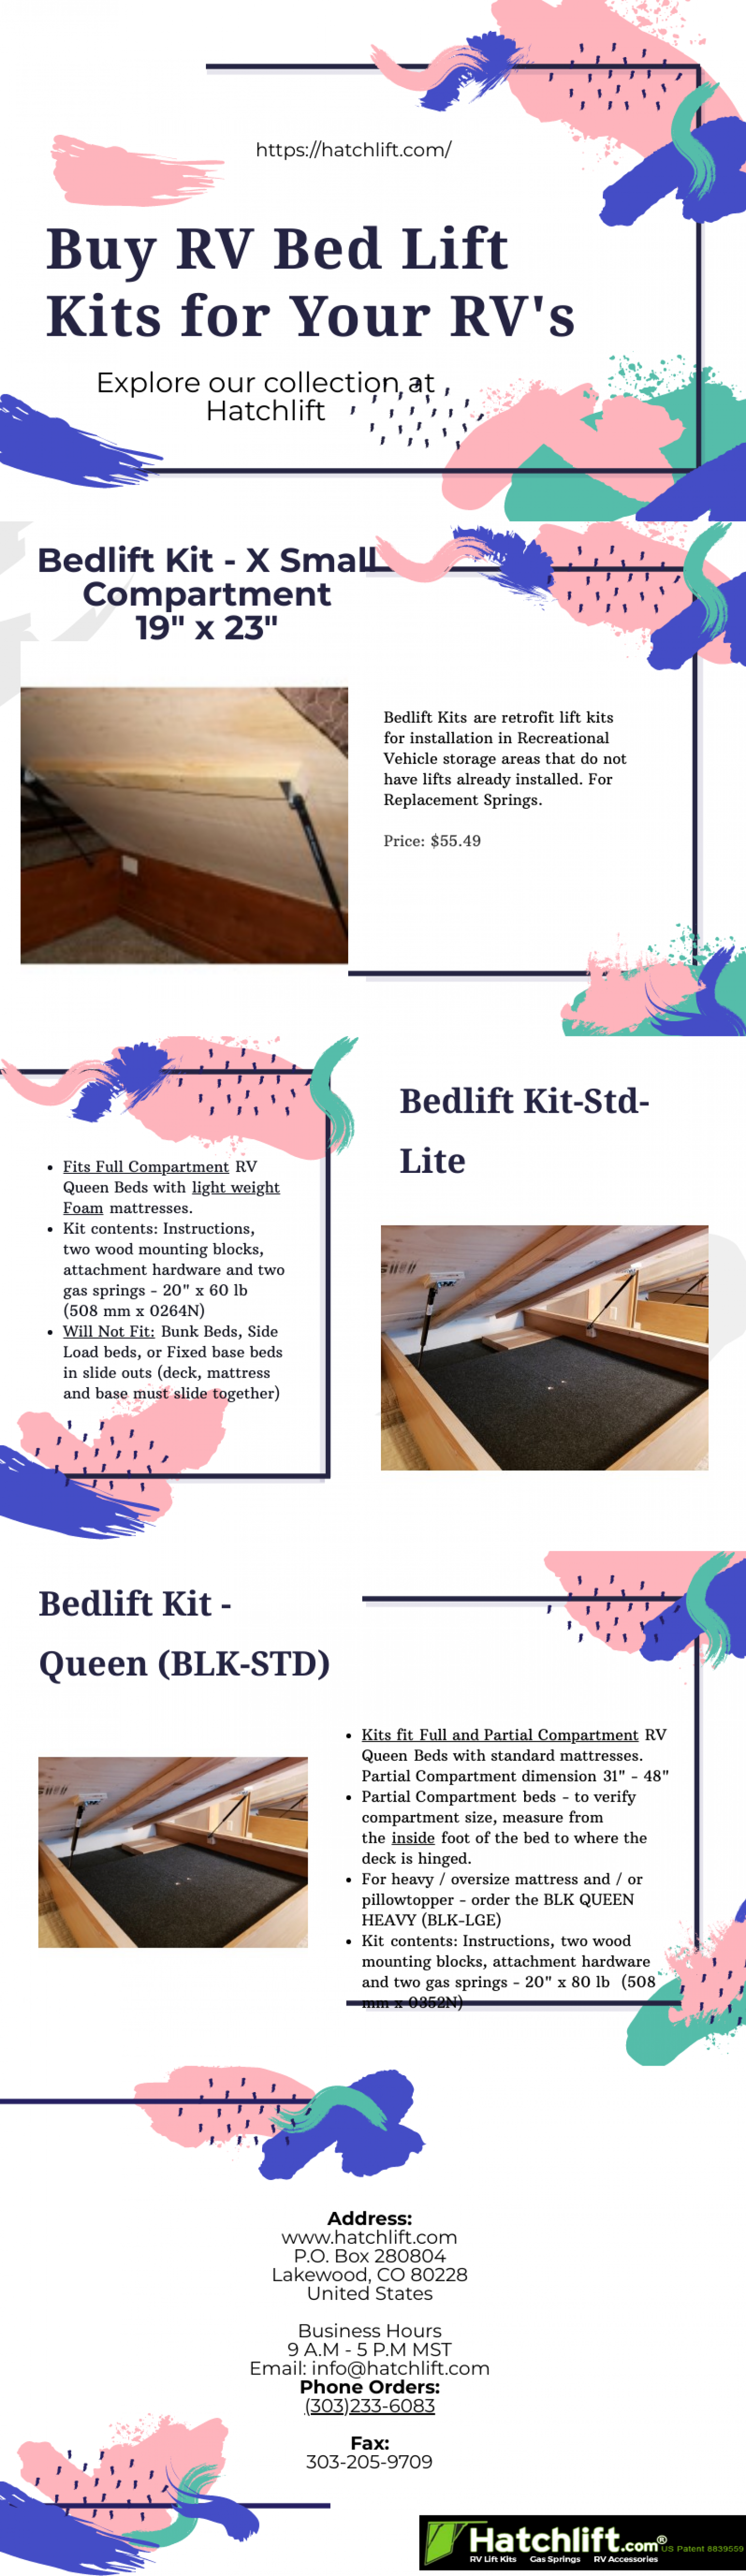 Buy RV Bed Lift Kit for Your RV's Infographic